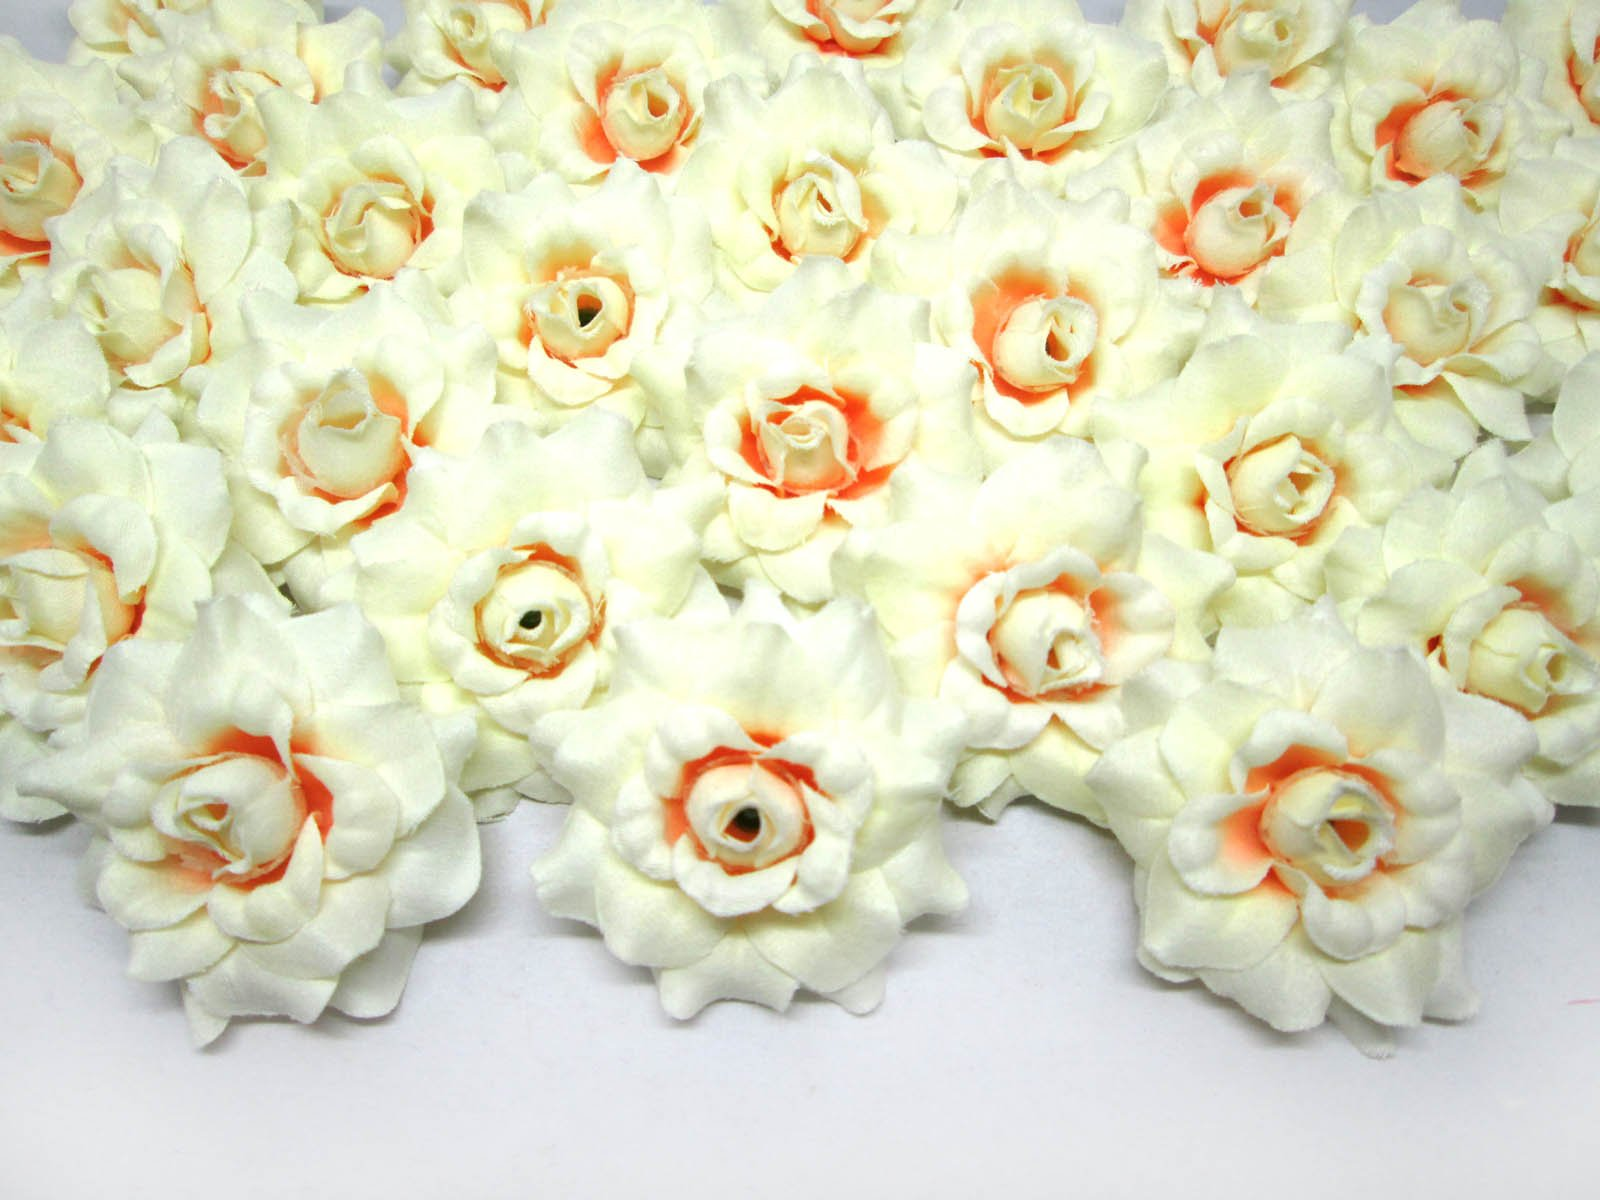 100-Silk-Cream-White-Roses-Flower-Head-175-Artificial-Flowers-Heads-Fabric-Floral-Supplies-Wholesale-Lot-for-Wedding-Flowers-Accessories-Make-Bridal-Hair-Clips-Headbands-Dress